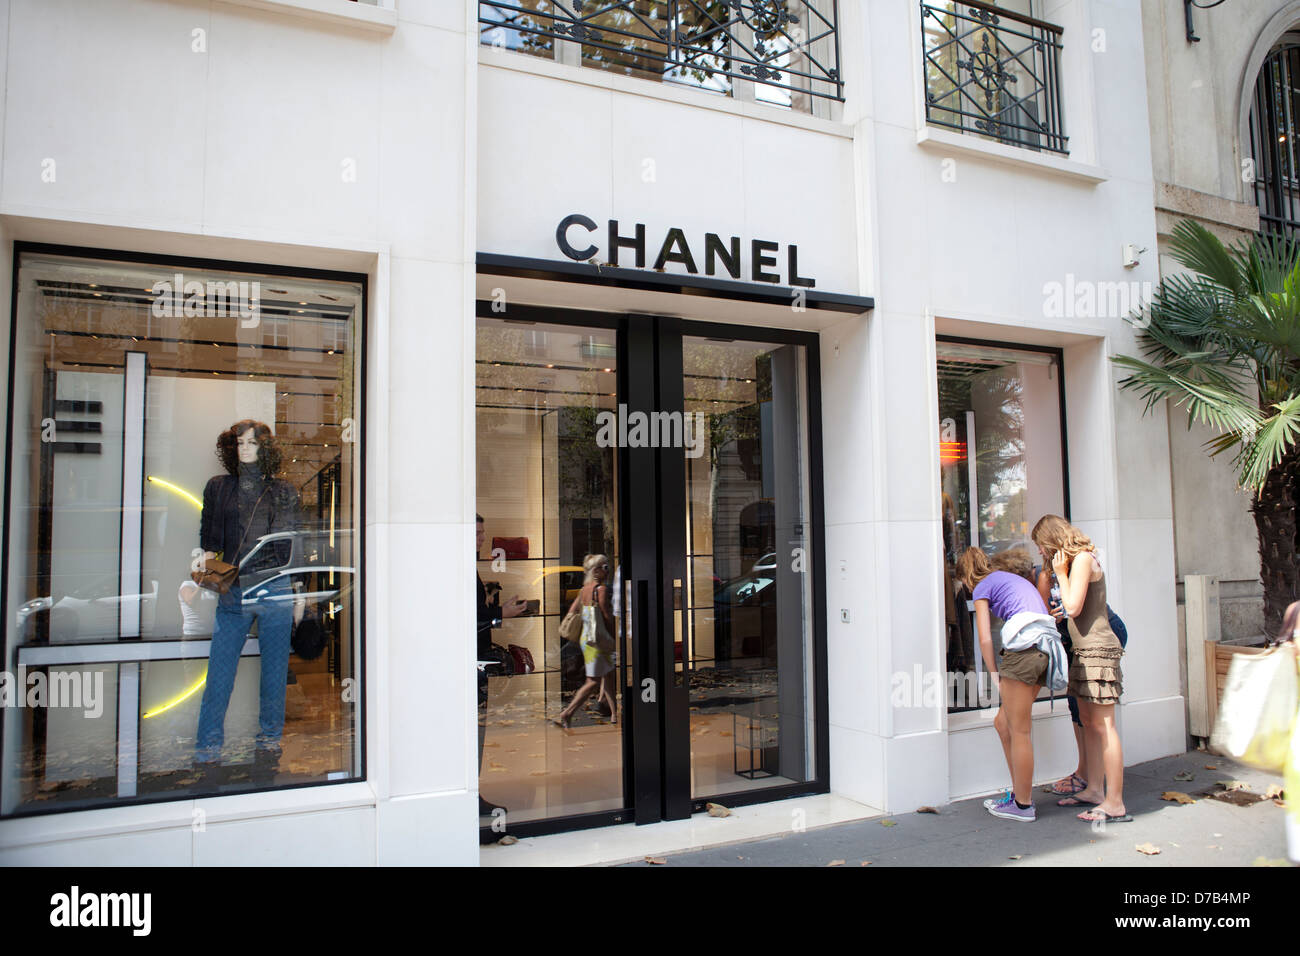 chanel shop window stock photos chanel shop window stock images alamy. Black Bedroom Furniture Sets. Home Design Ideas